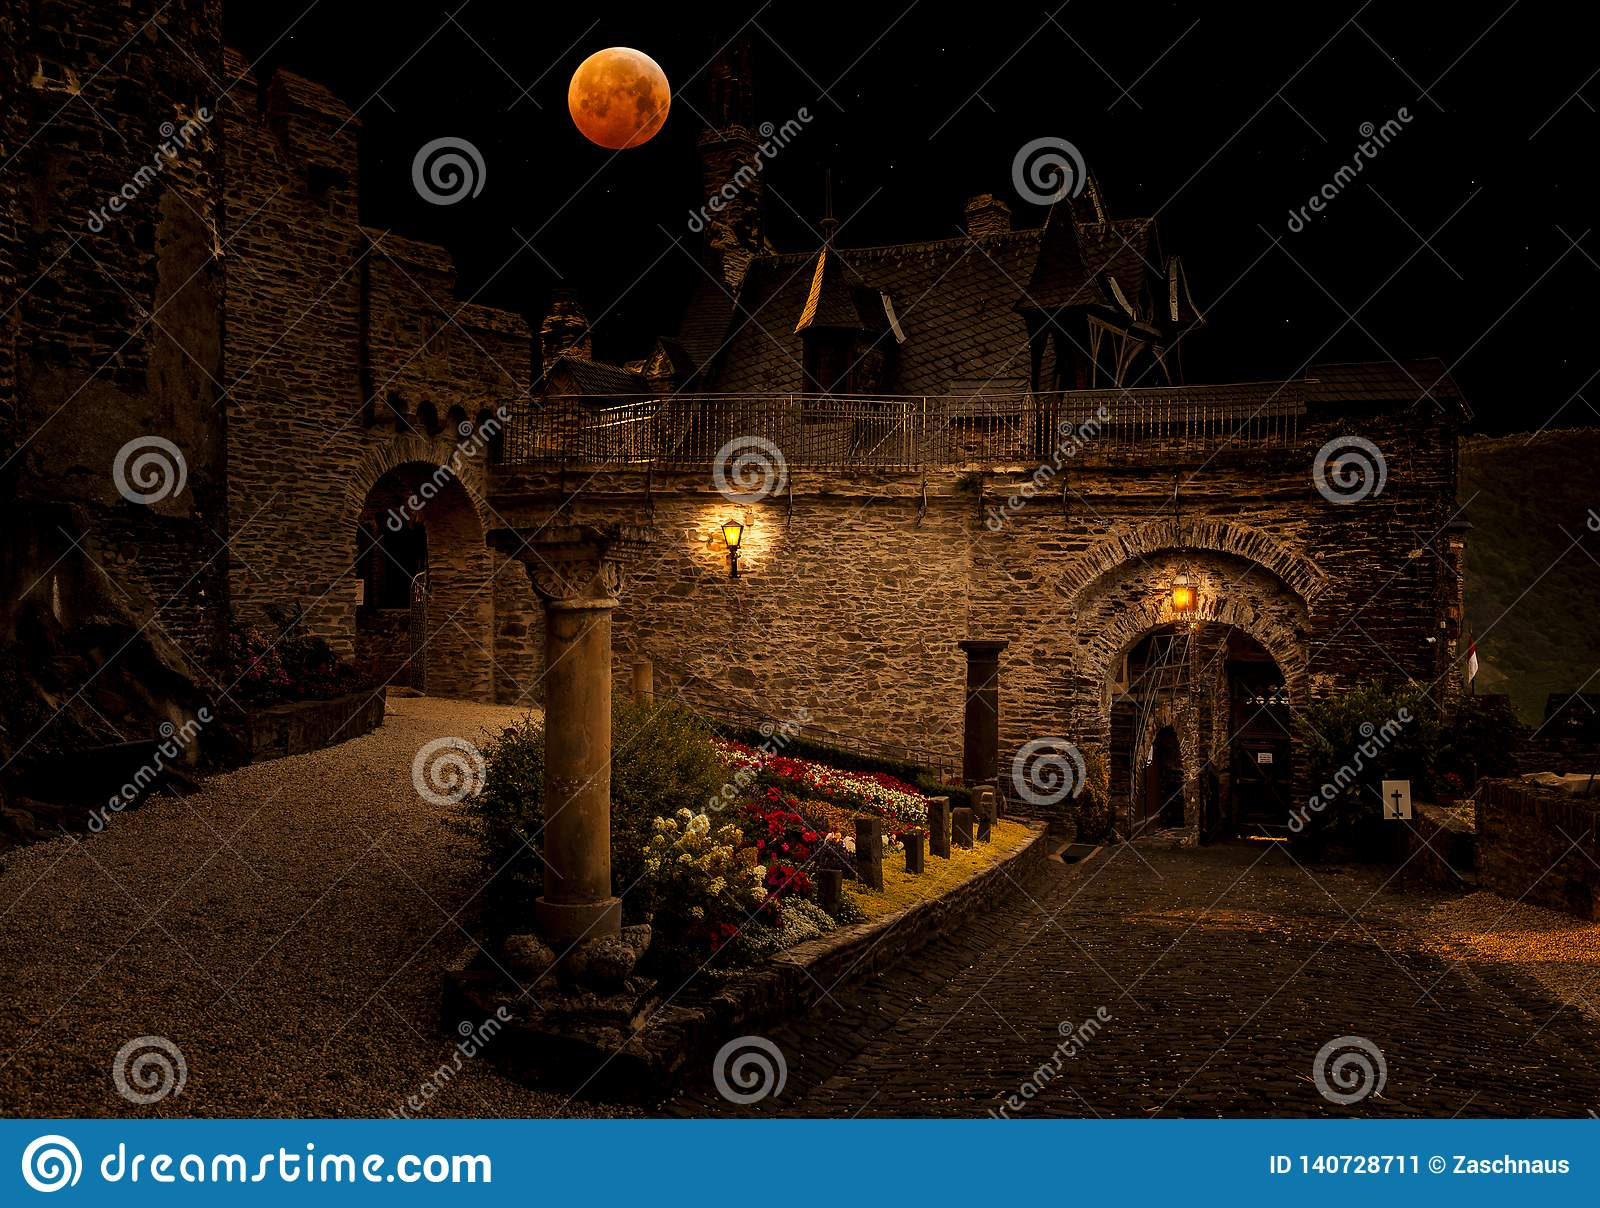 Blood moon over medieval city.